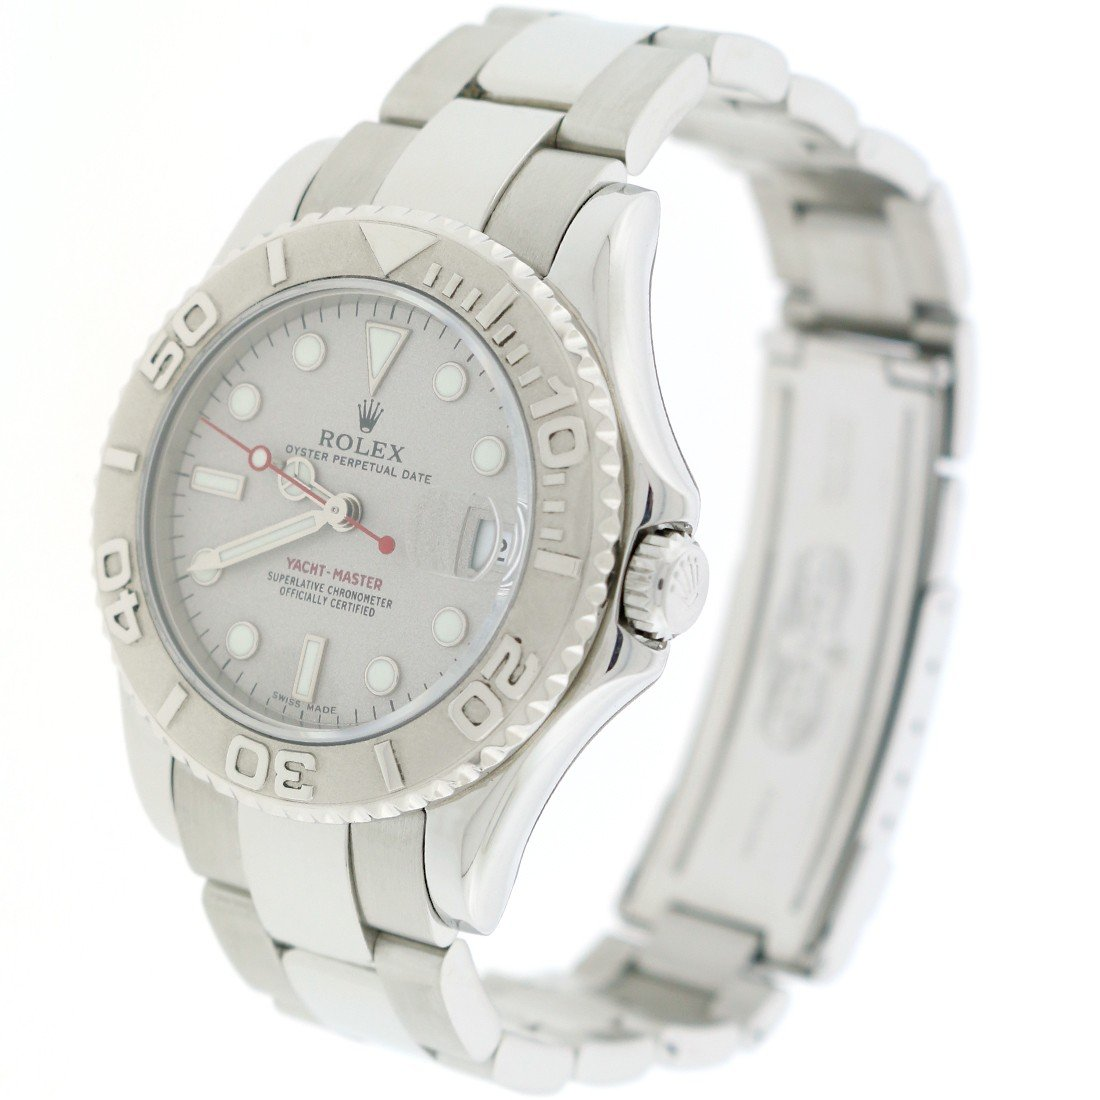 Rolex Yacht-Master automatic-self-wind mens Watch 168622 (Certified Pre-owned) by Rolex (Image #4)